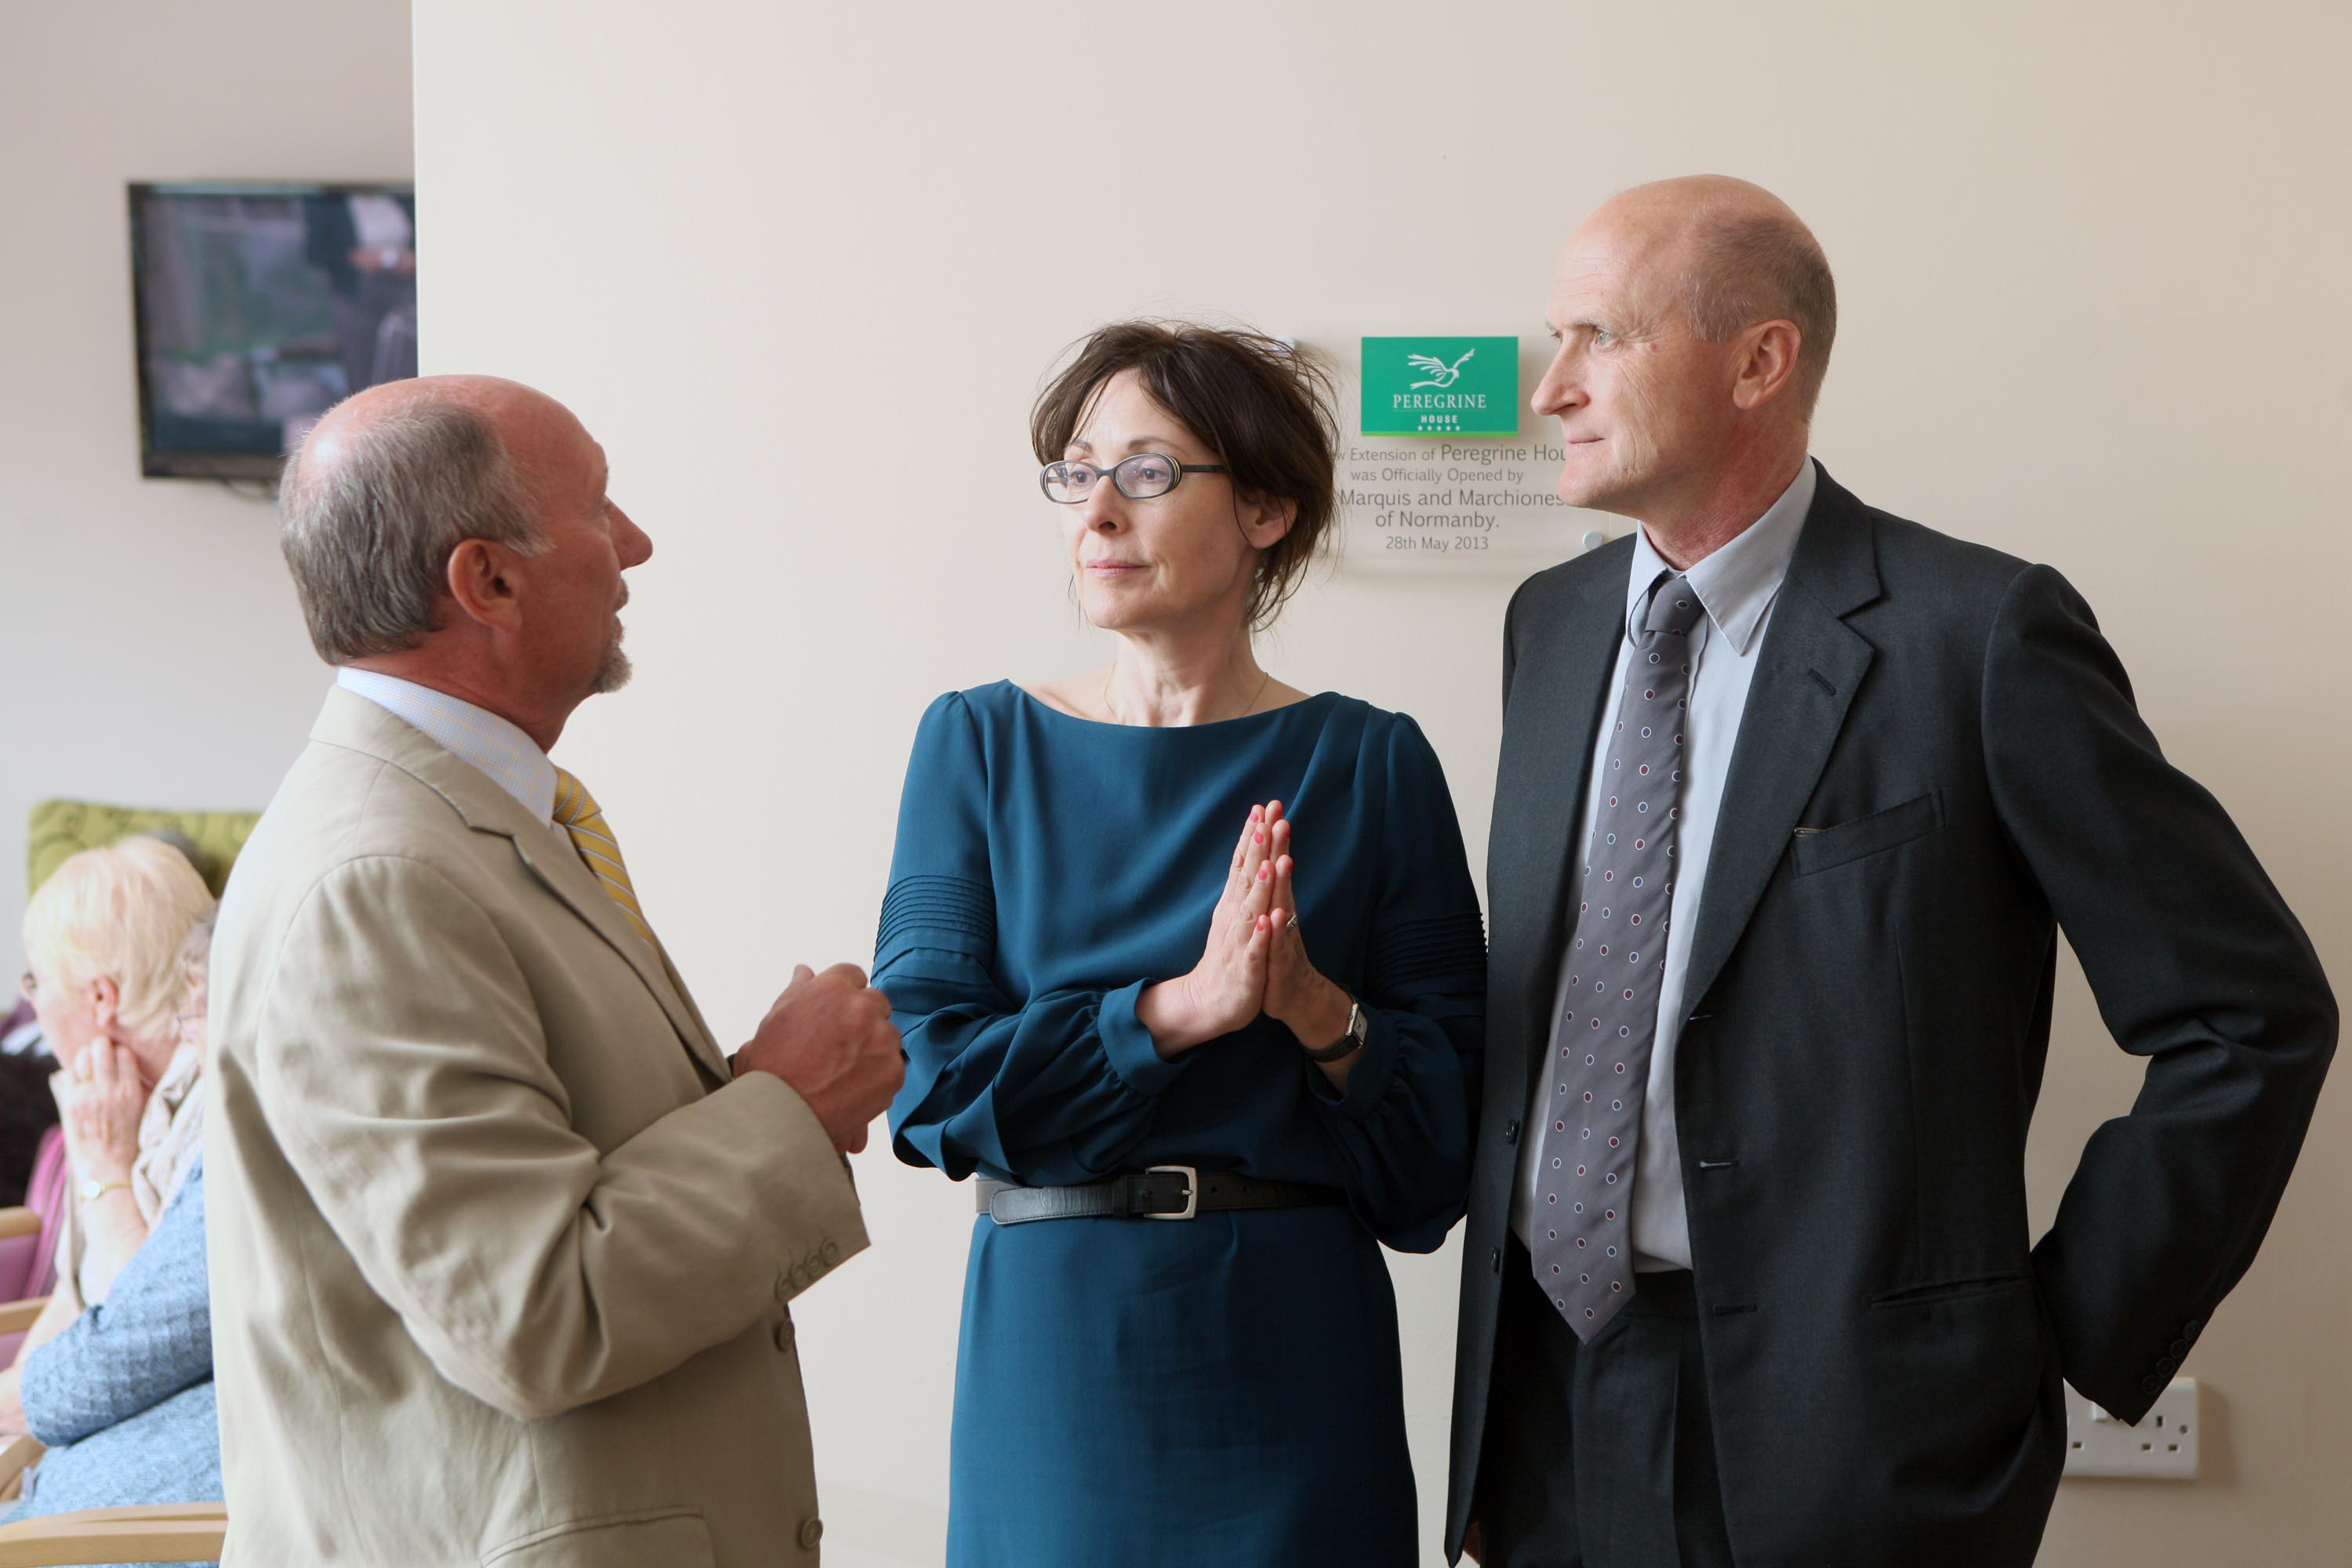 Dr. Kevin O'Sullivan talking with the Marquis and Marchioness of Normanby